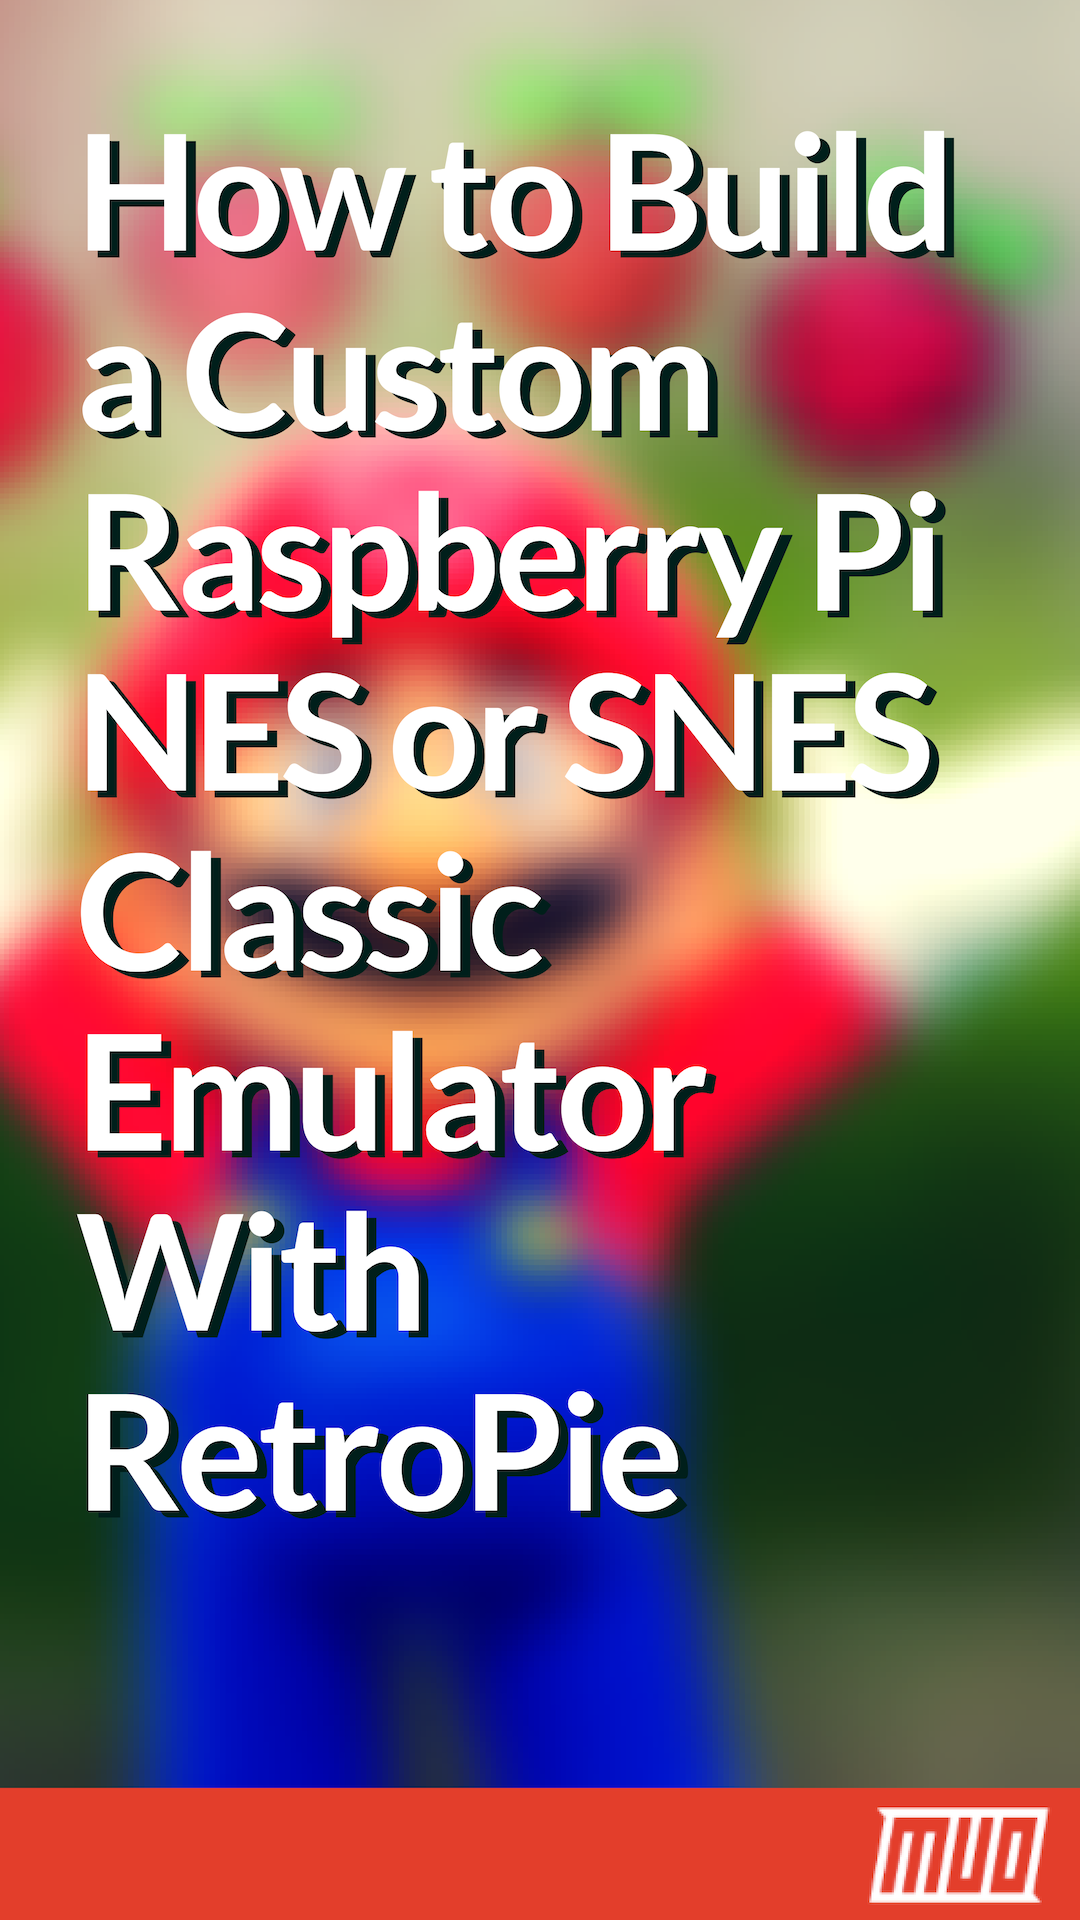 How to Build a Custom Raspberry Pi NES or SNES Classic Emulator With